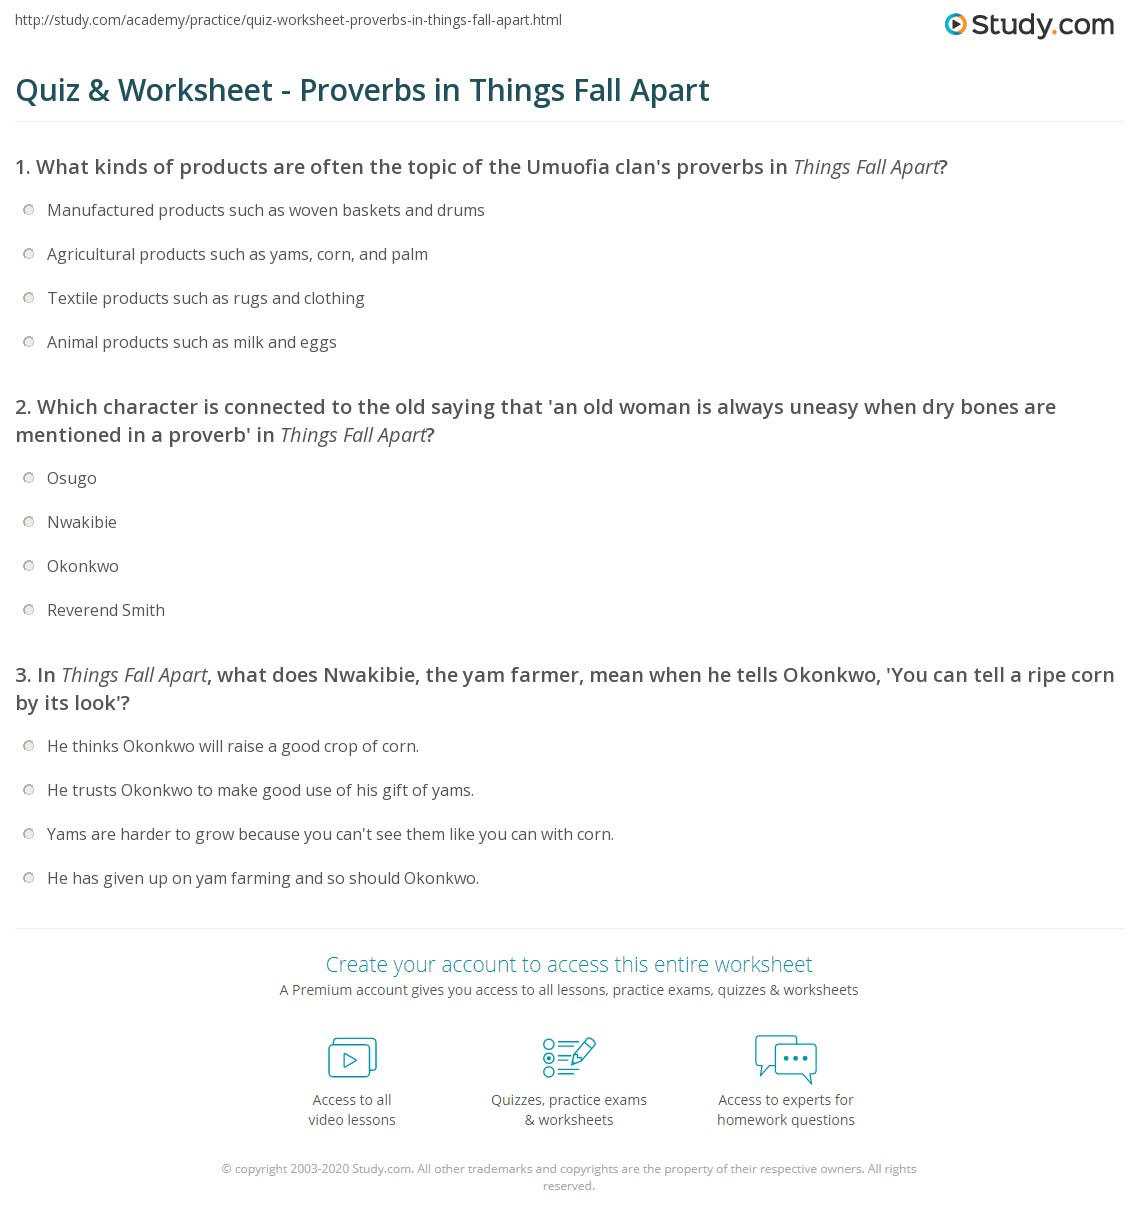 quiz worksheet proverbs in things fall apart. Black Bedroom Furniture Sets. Home Design Ideas